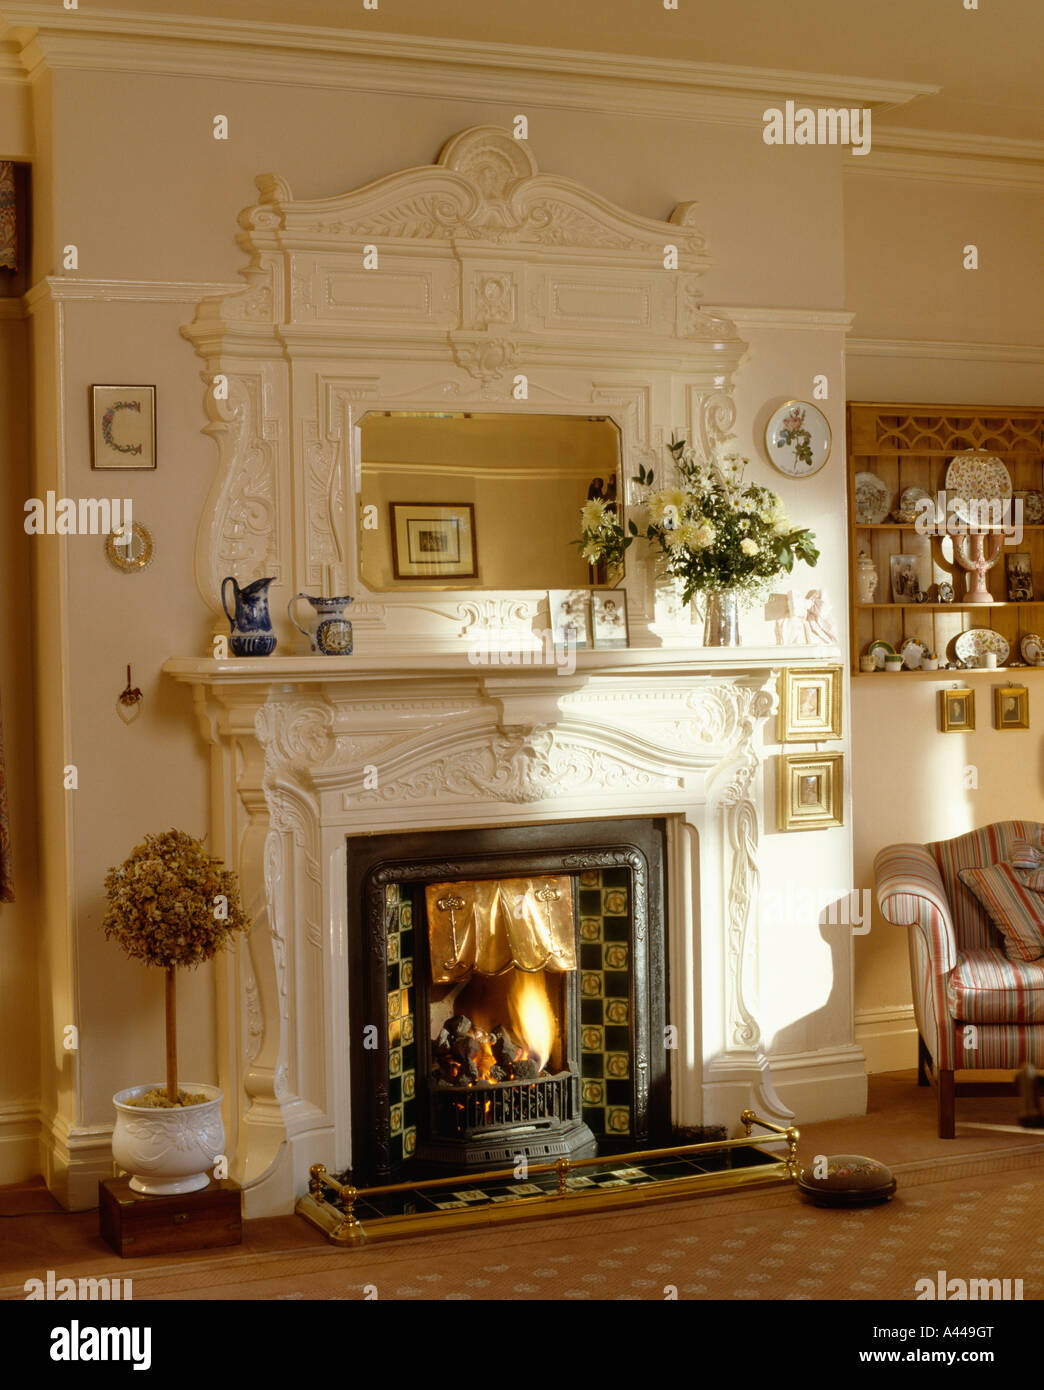 Close Up Of Cream Edwardian Fireplace And Overmantel Mirror In Traditional Sittingroom